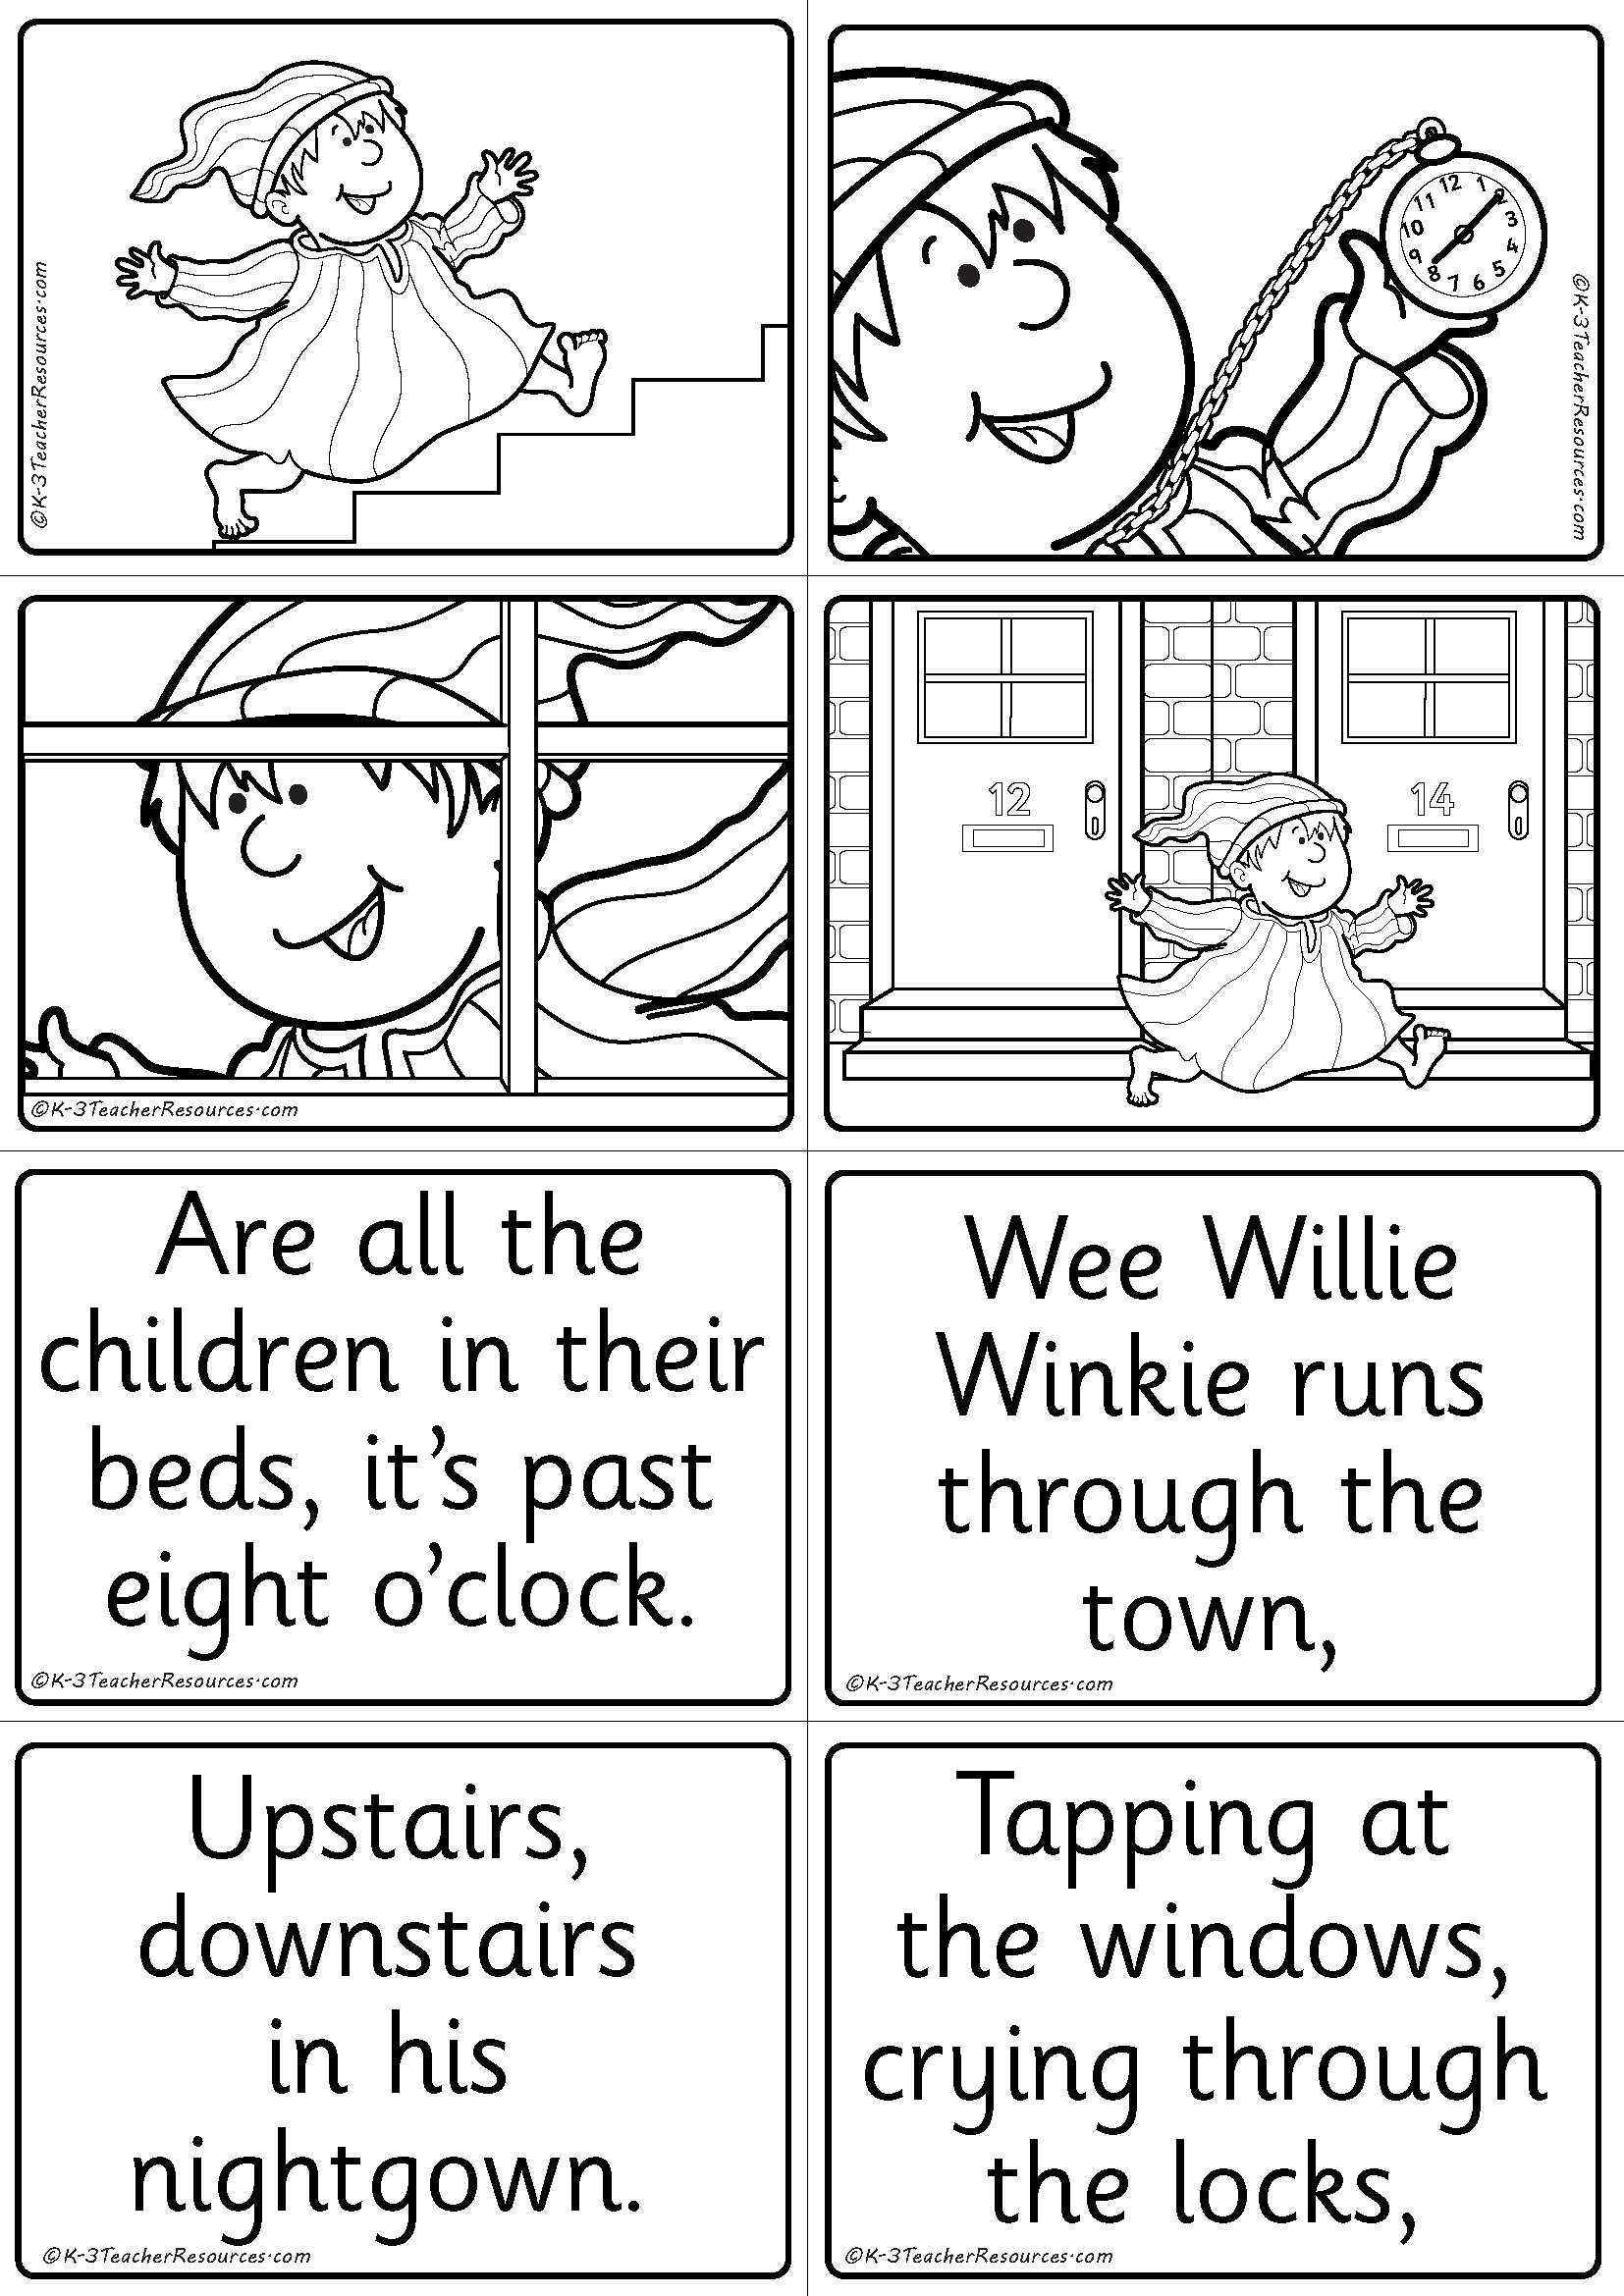 Wee Willie Winkie With Lyrics Coloring Page